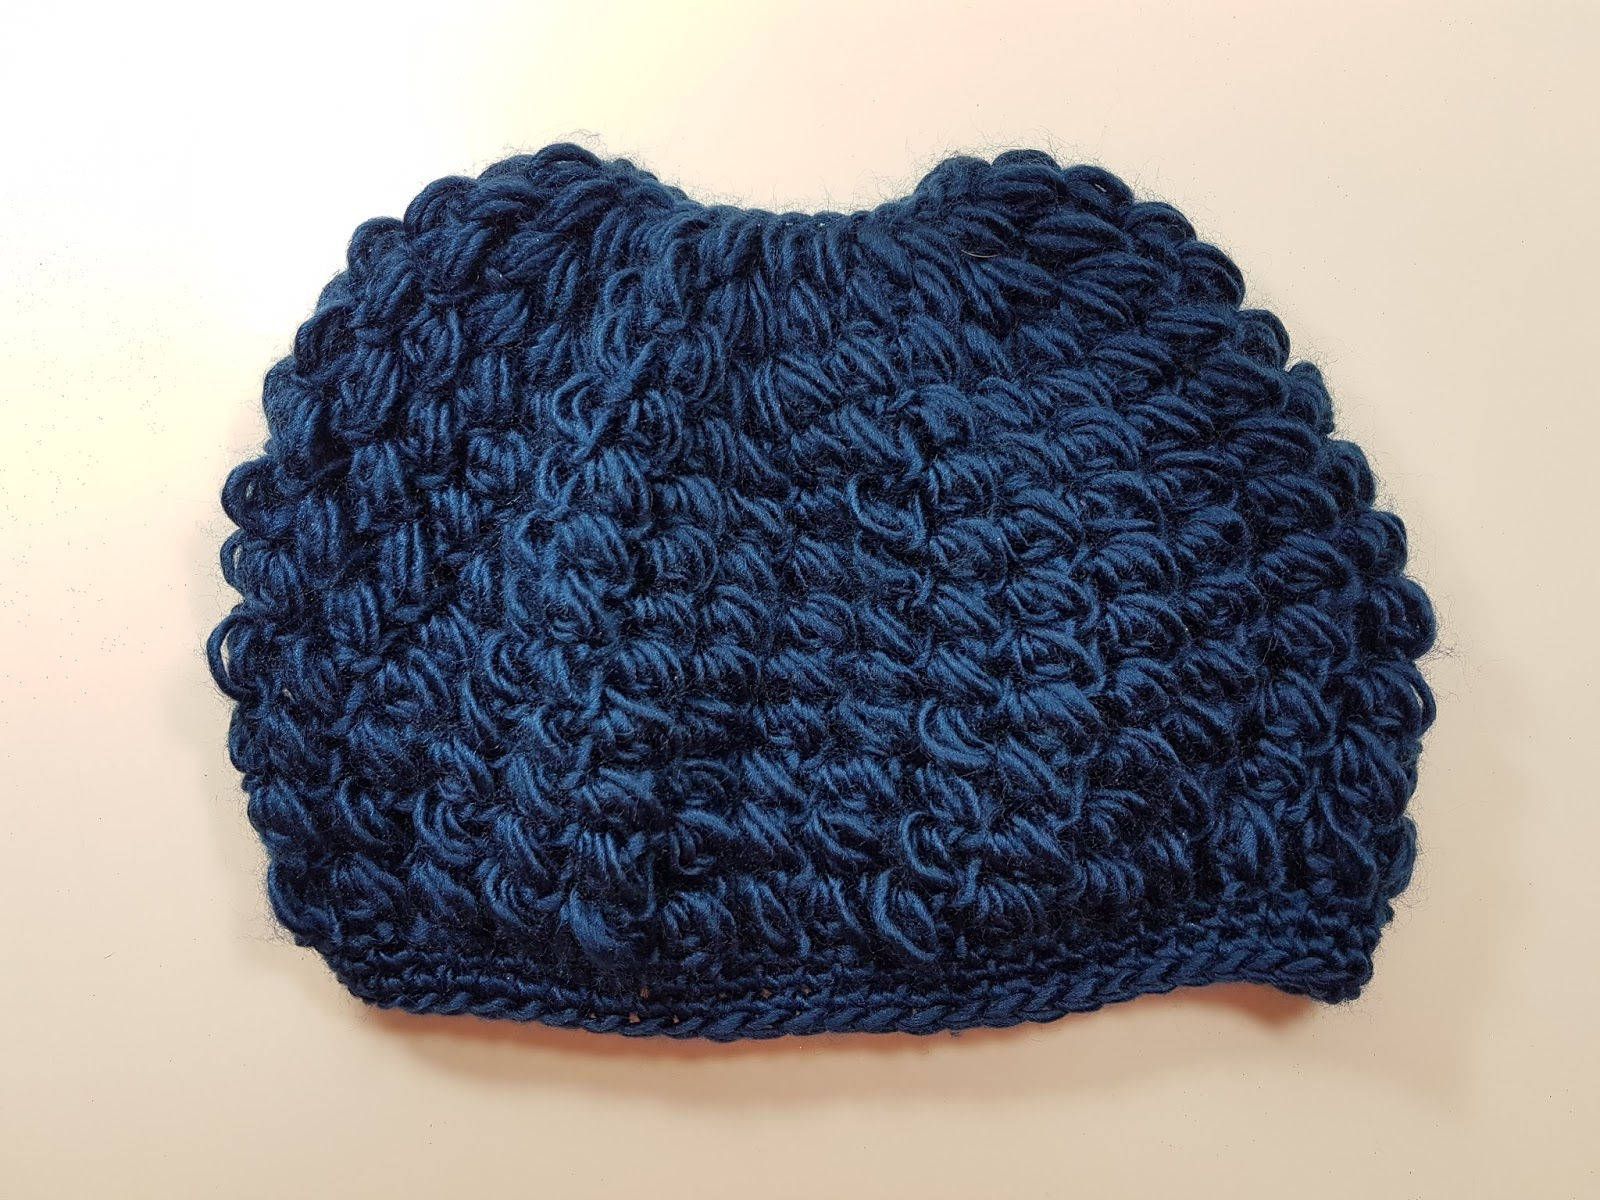 a460dbbe3d5 Here is an easy puff stitch messy bun hat for everyone to try and share  )  I made it out of a lion heart brand yarn